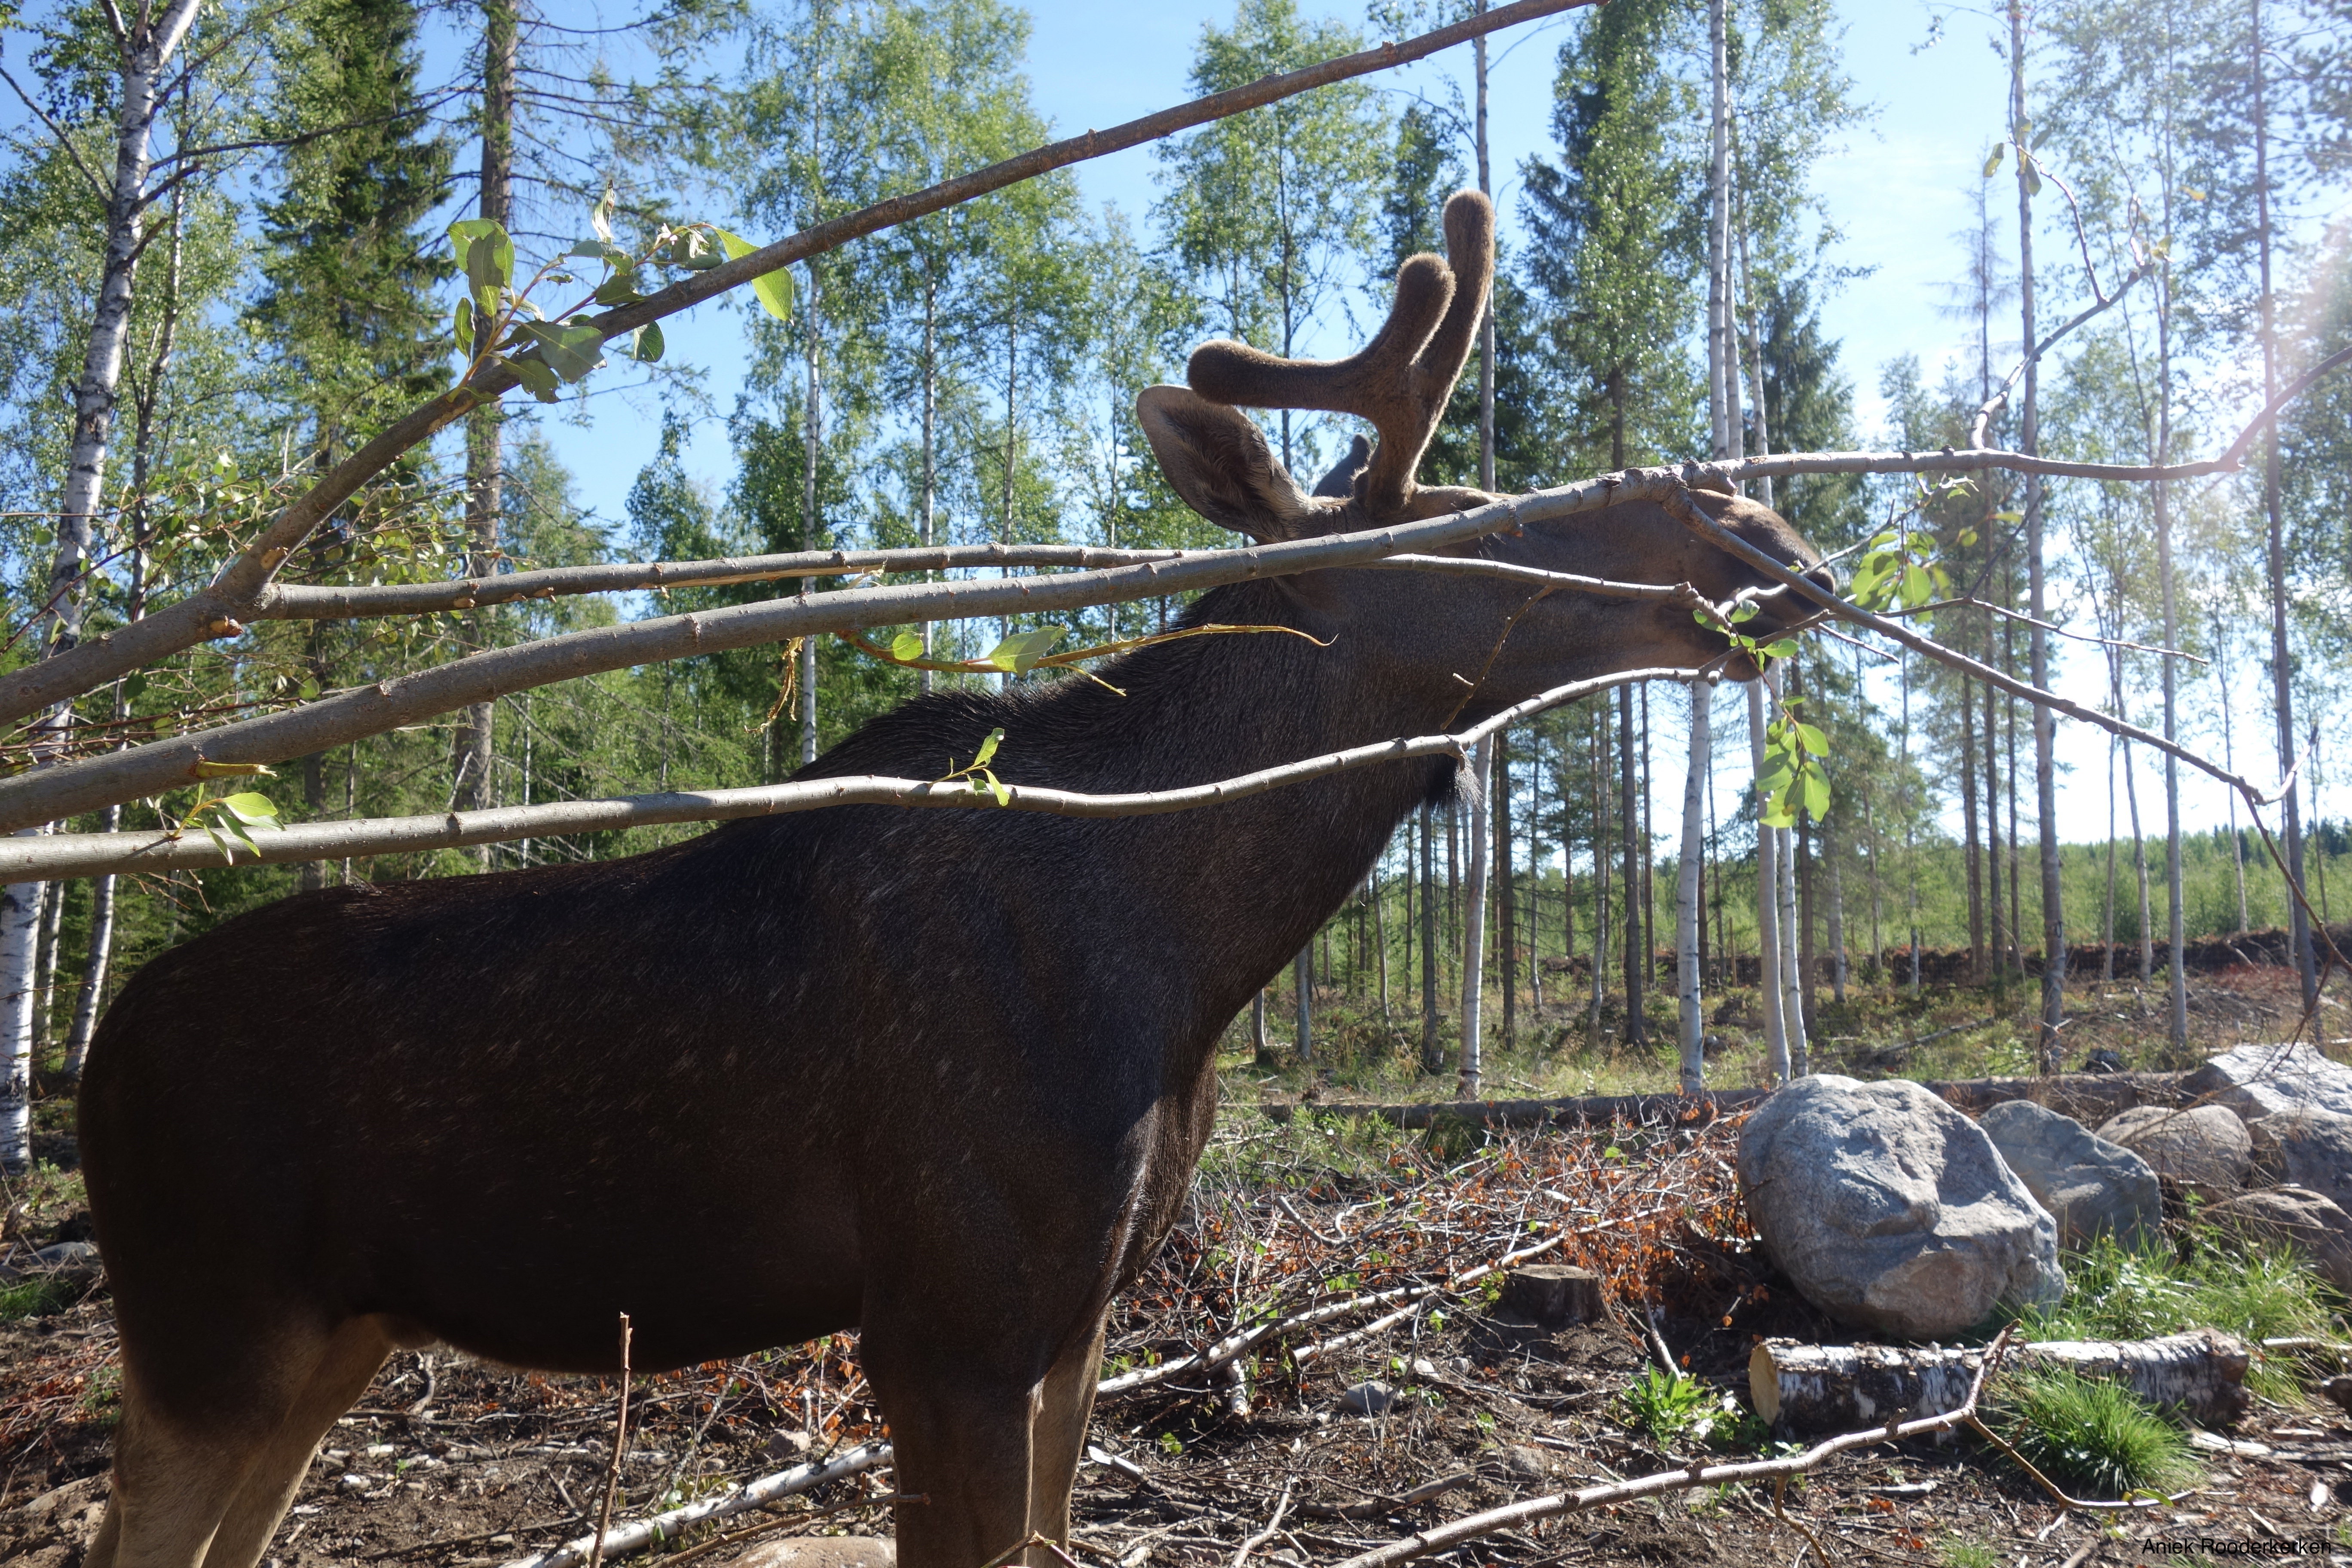 The moose of Cape Wild live in a fenced area.